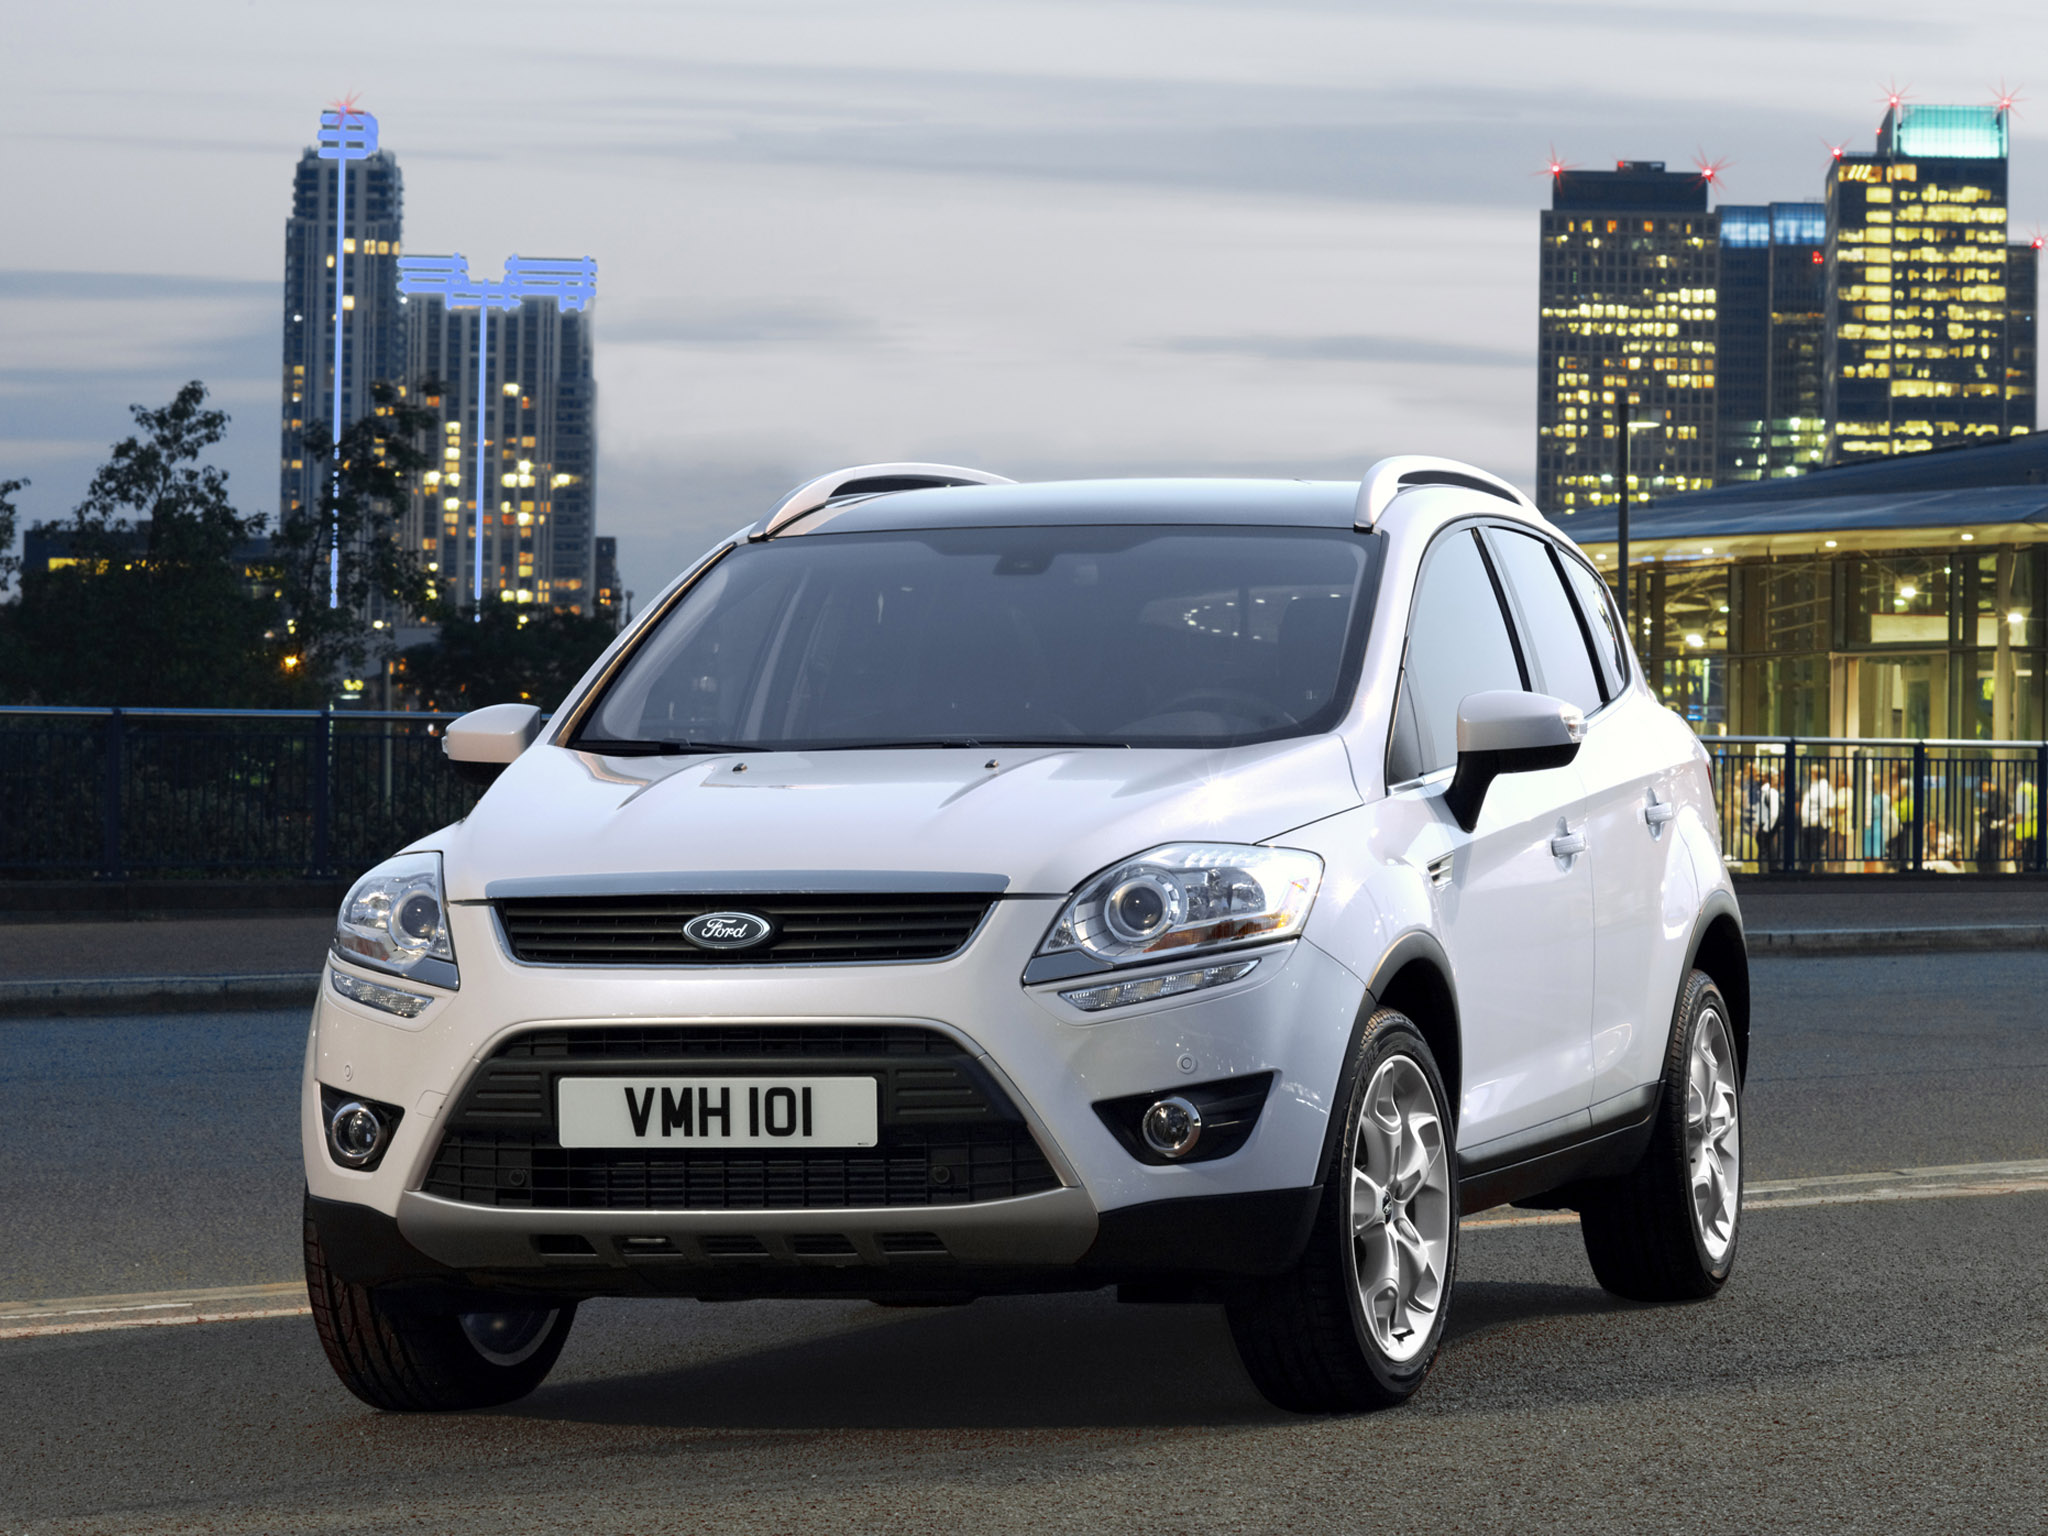 ford kuga titanium s 2011 ford kuga titanium s 2011 photo 08 car in pictures car photo gallery. Black Bedroom Furniture Sets. Home Design Ideas